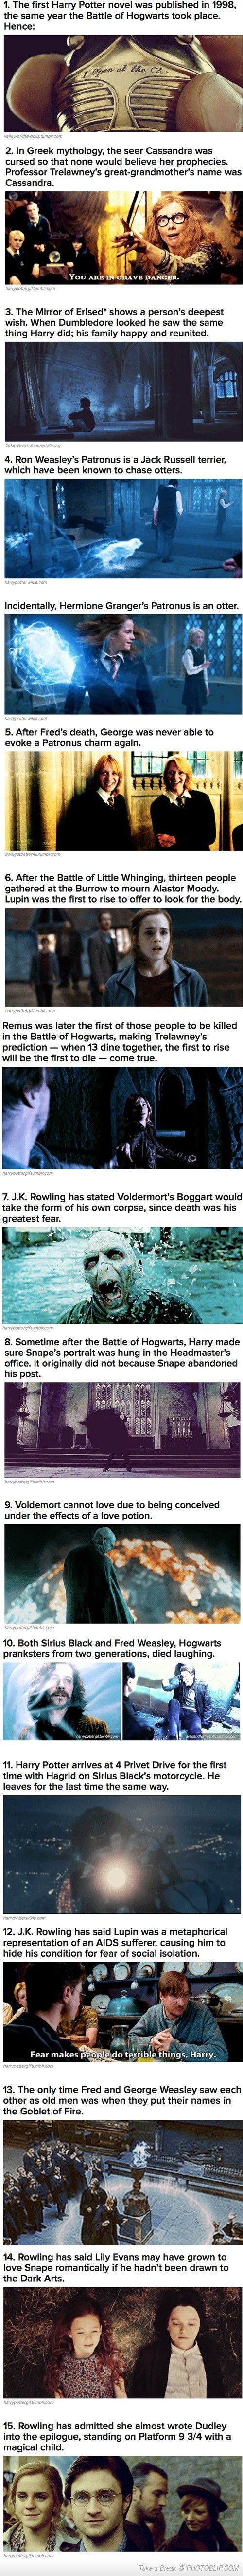 cool Harry Potter facts more funny pics on facebook: https://www.facebook.com/yourfunnypics101